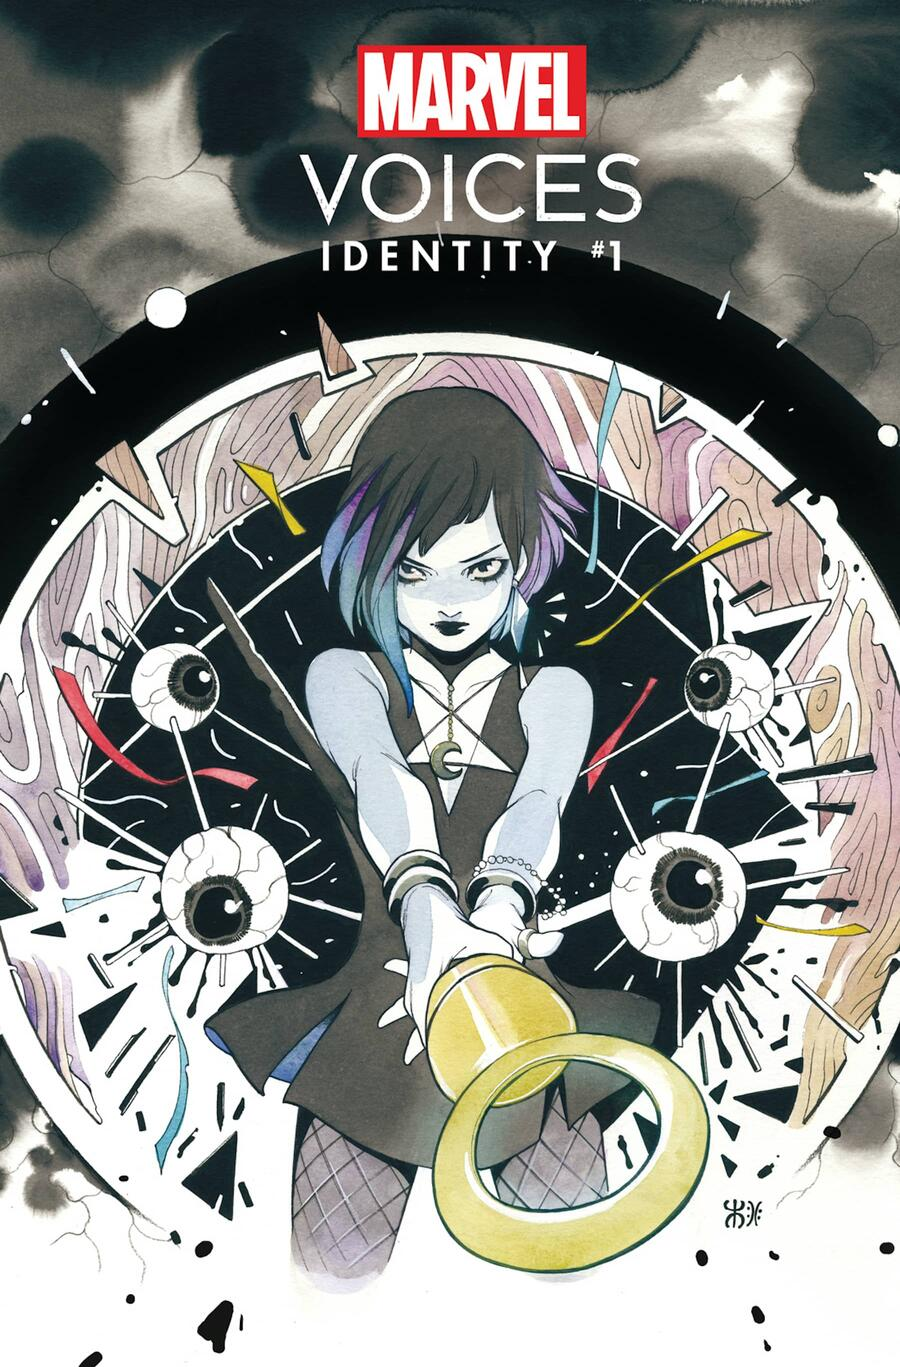 MARVEL'S VOICES: IDENTITY #1 Variant Cover by PEACH MOMOKO